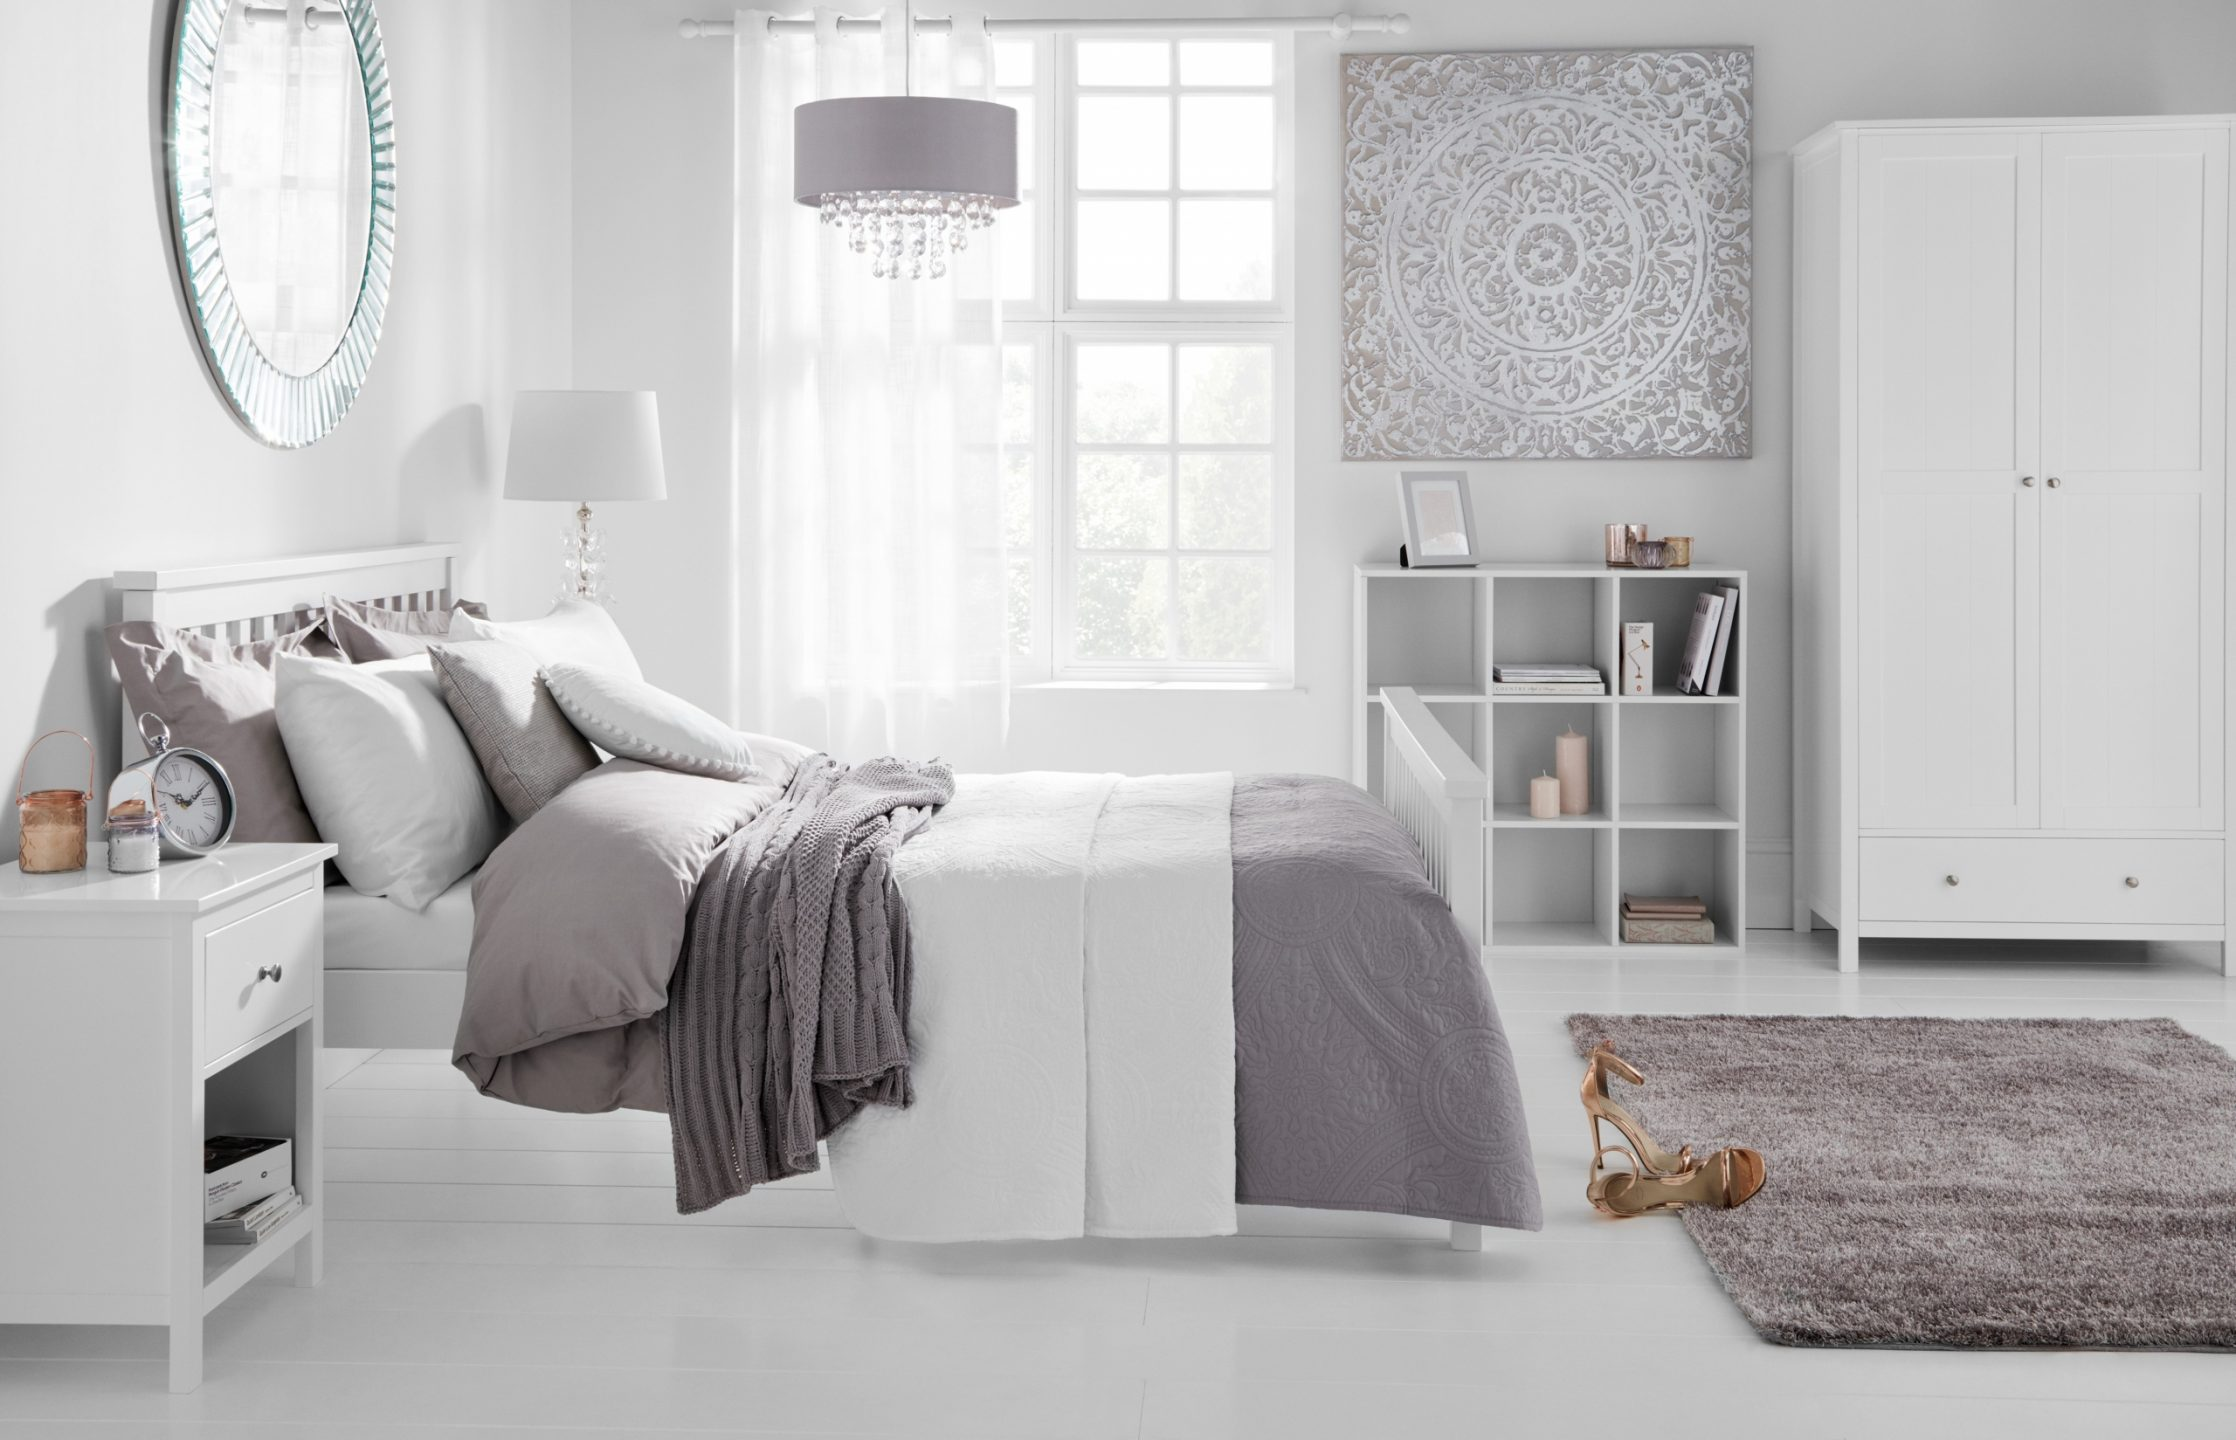 Set 2 White Bedroom 2B Side Shot Of Bed With Accessories Landscape